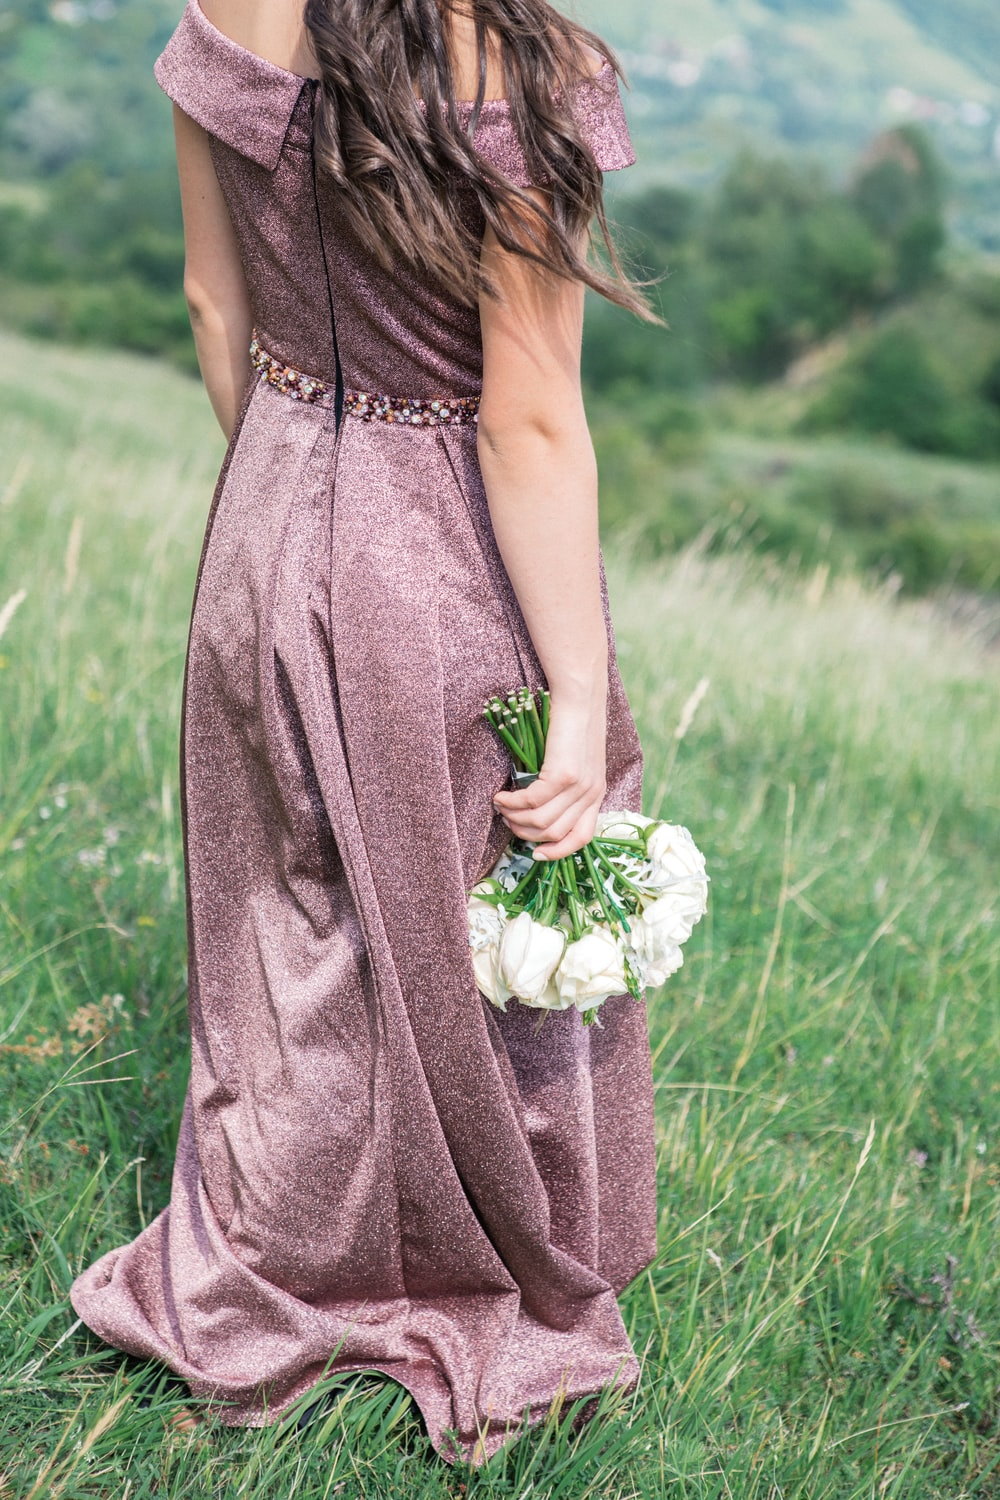 woman standing on grass fields holding bouquet of white flowers